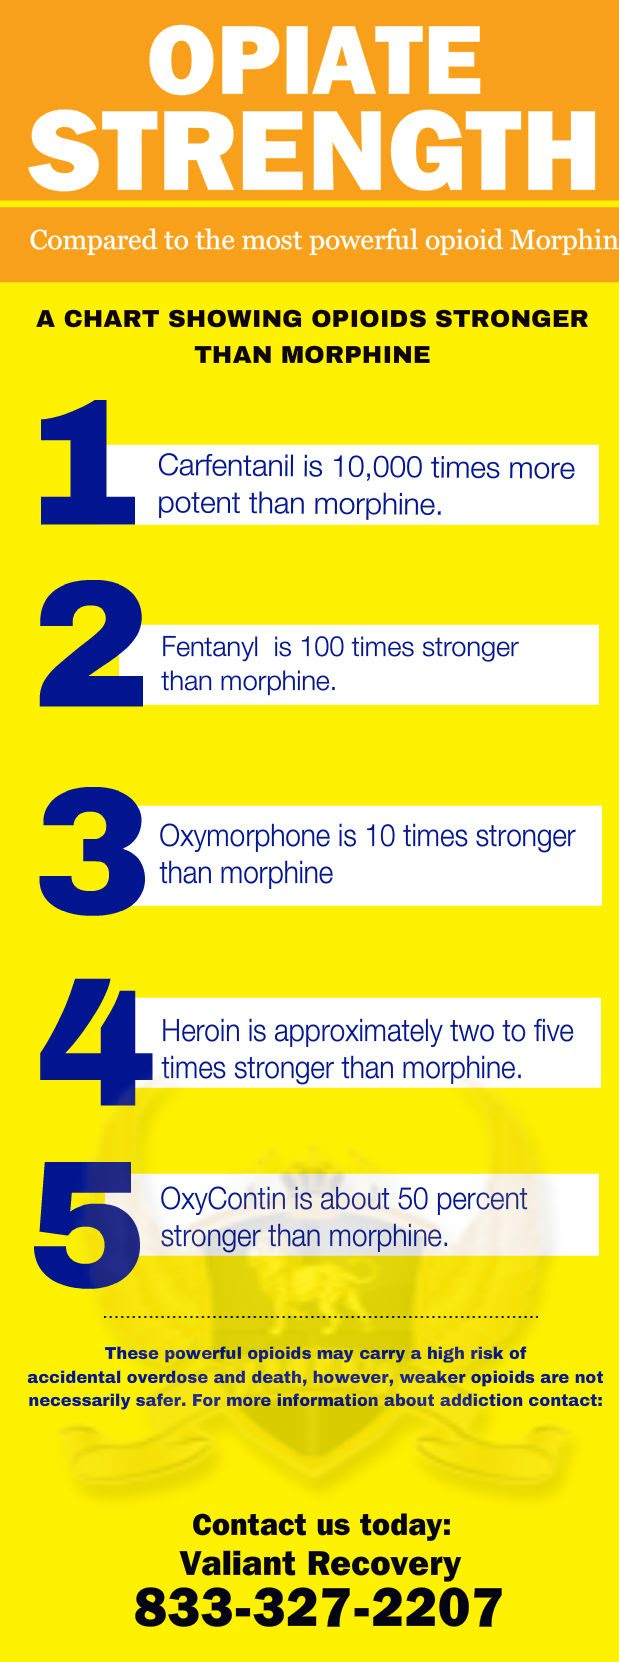 Opiate Strengths Infographic